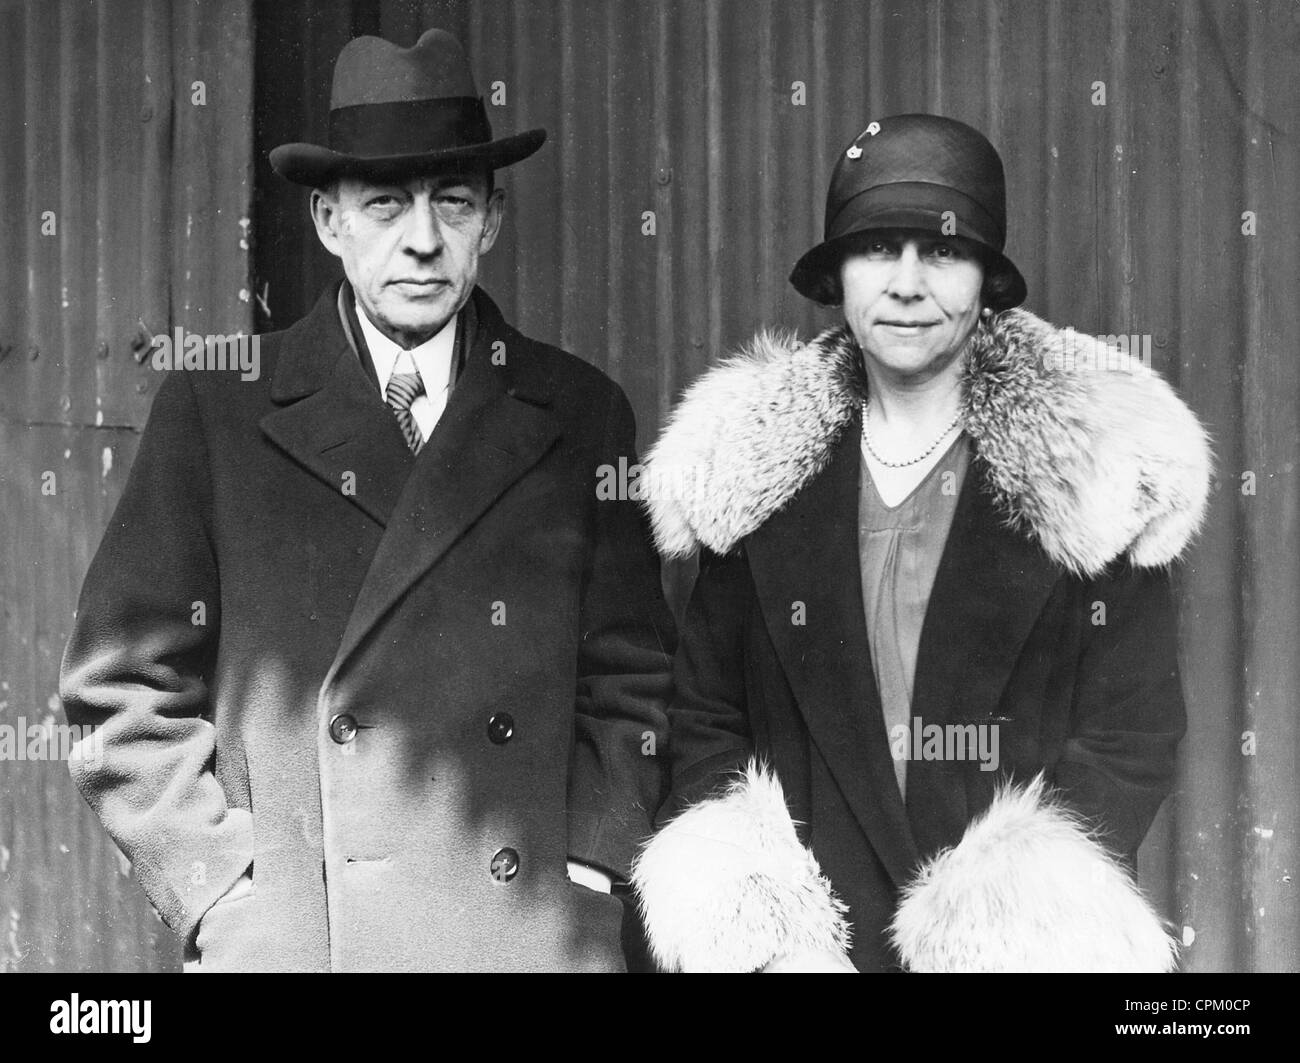 Sergei Rachmaninoff with his wife, 1928 - Stock Image